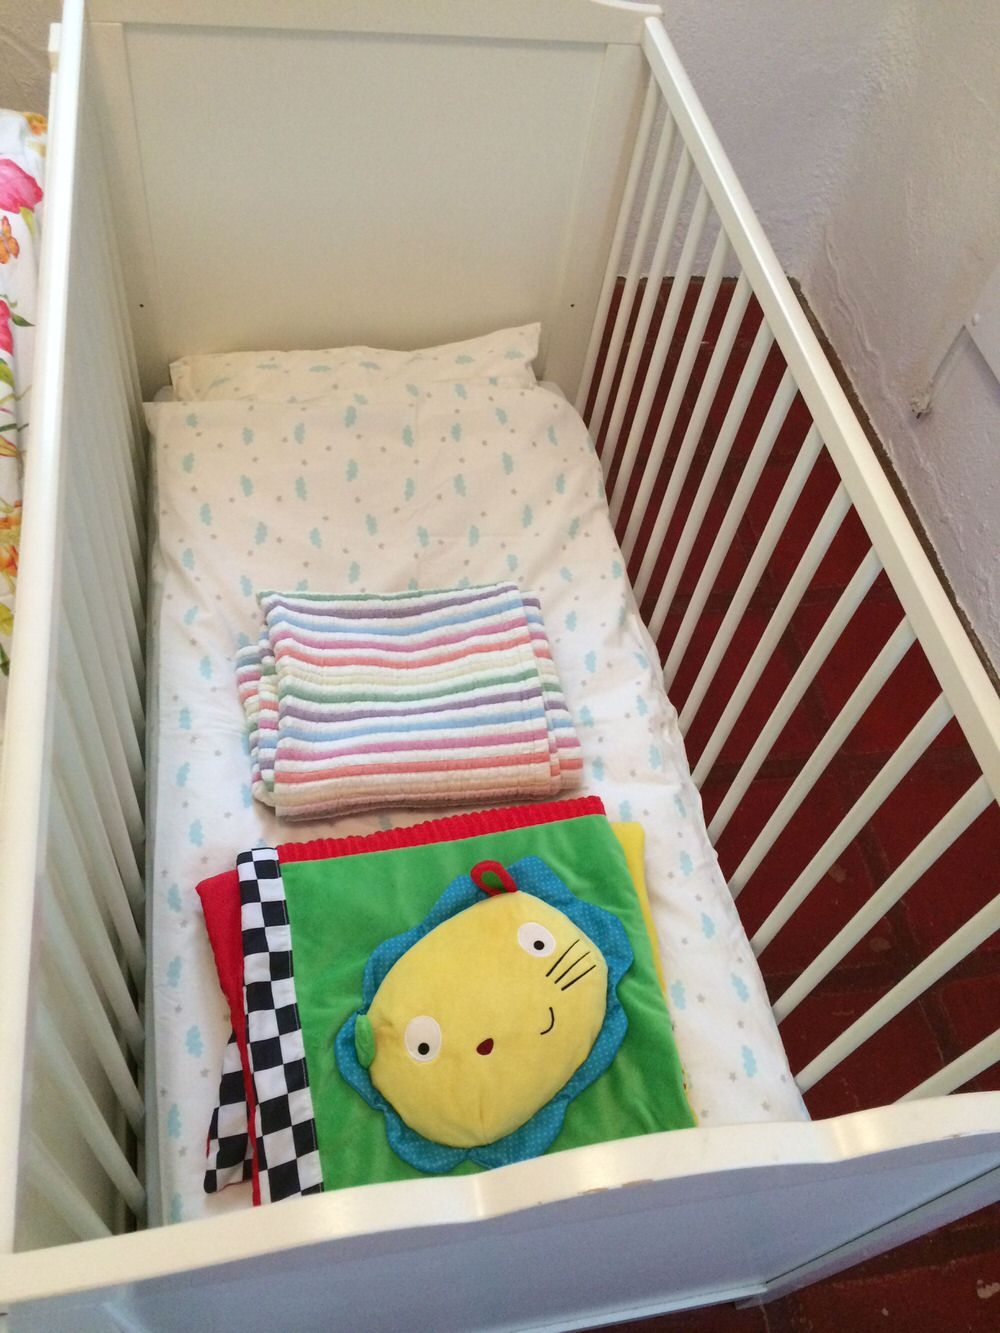 We provide cot bedding and play mats for baby